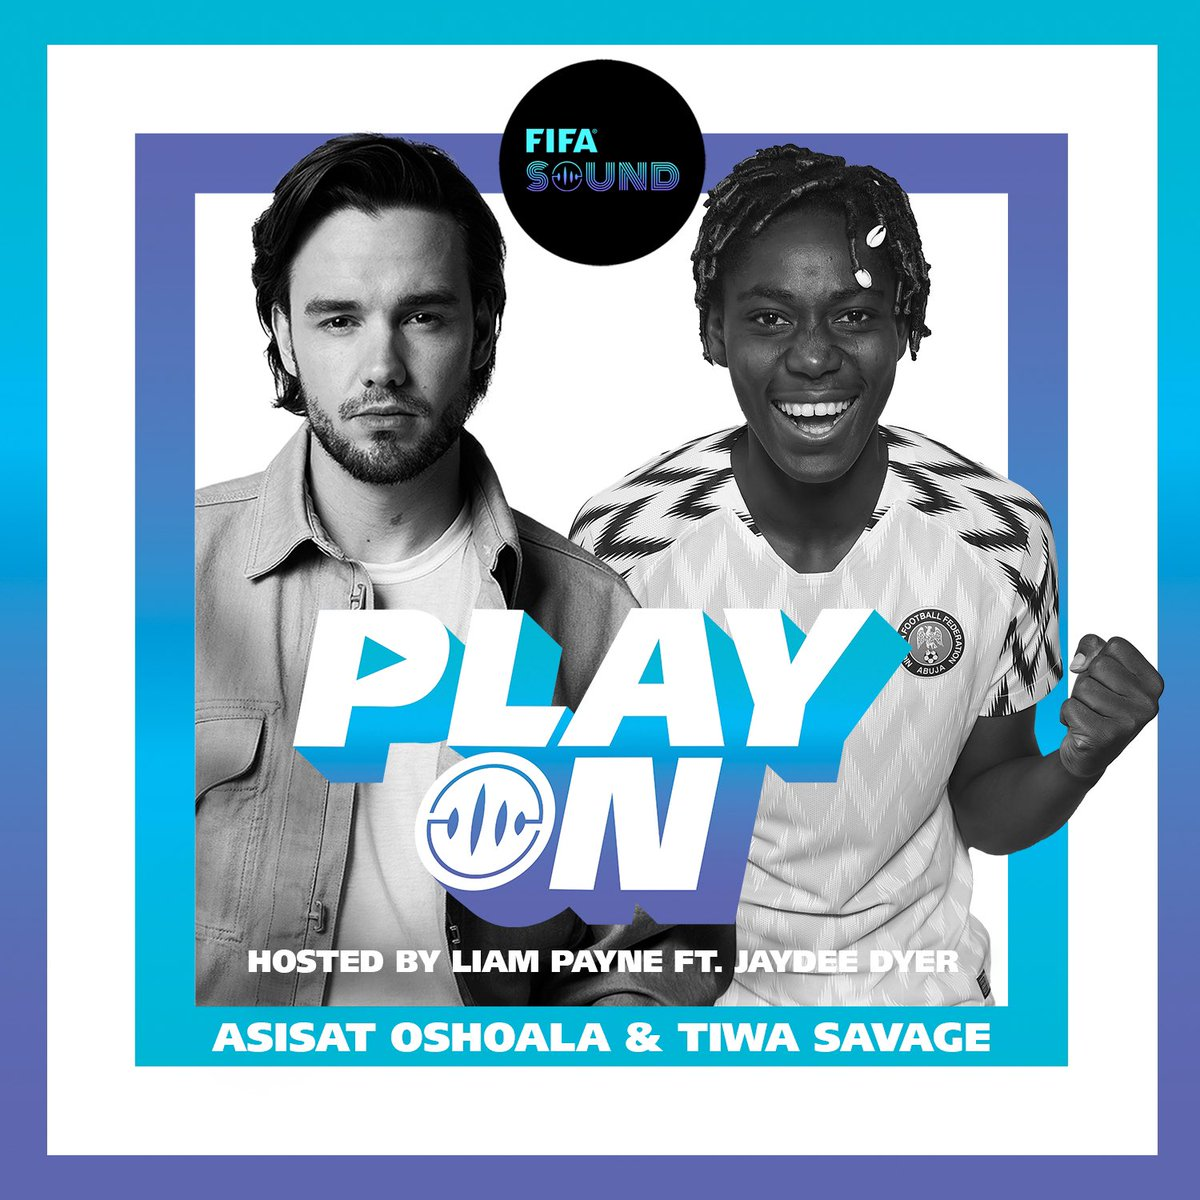 Joining me on this week's episode of the FIFA PlayOn podcast are @AsisatOshoala & @TiwaSavage 🙌🏼 Hear how the two are changing the game for football and music in Nigeria, Africa, and beyond https://t.co/KBoXqwLX68 #fifasound #playon https://t.co/jXZKLTF4nn